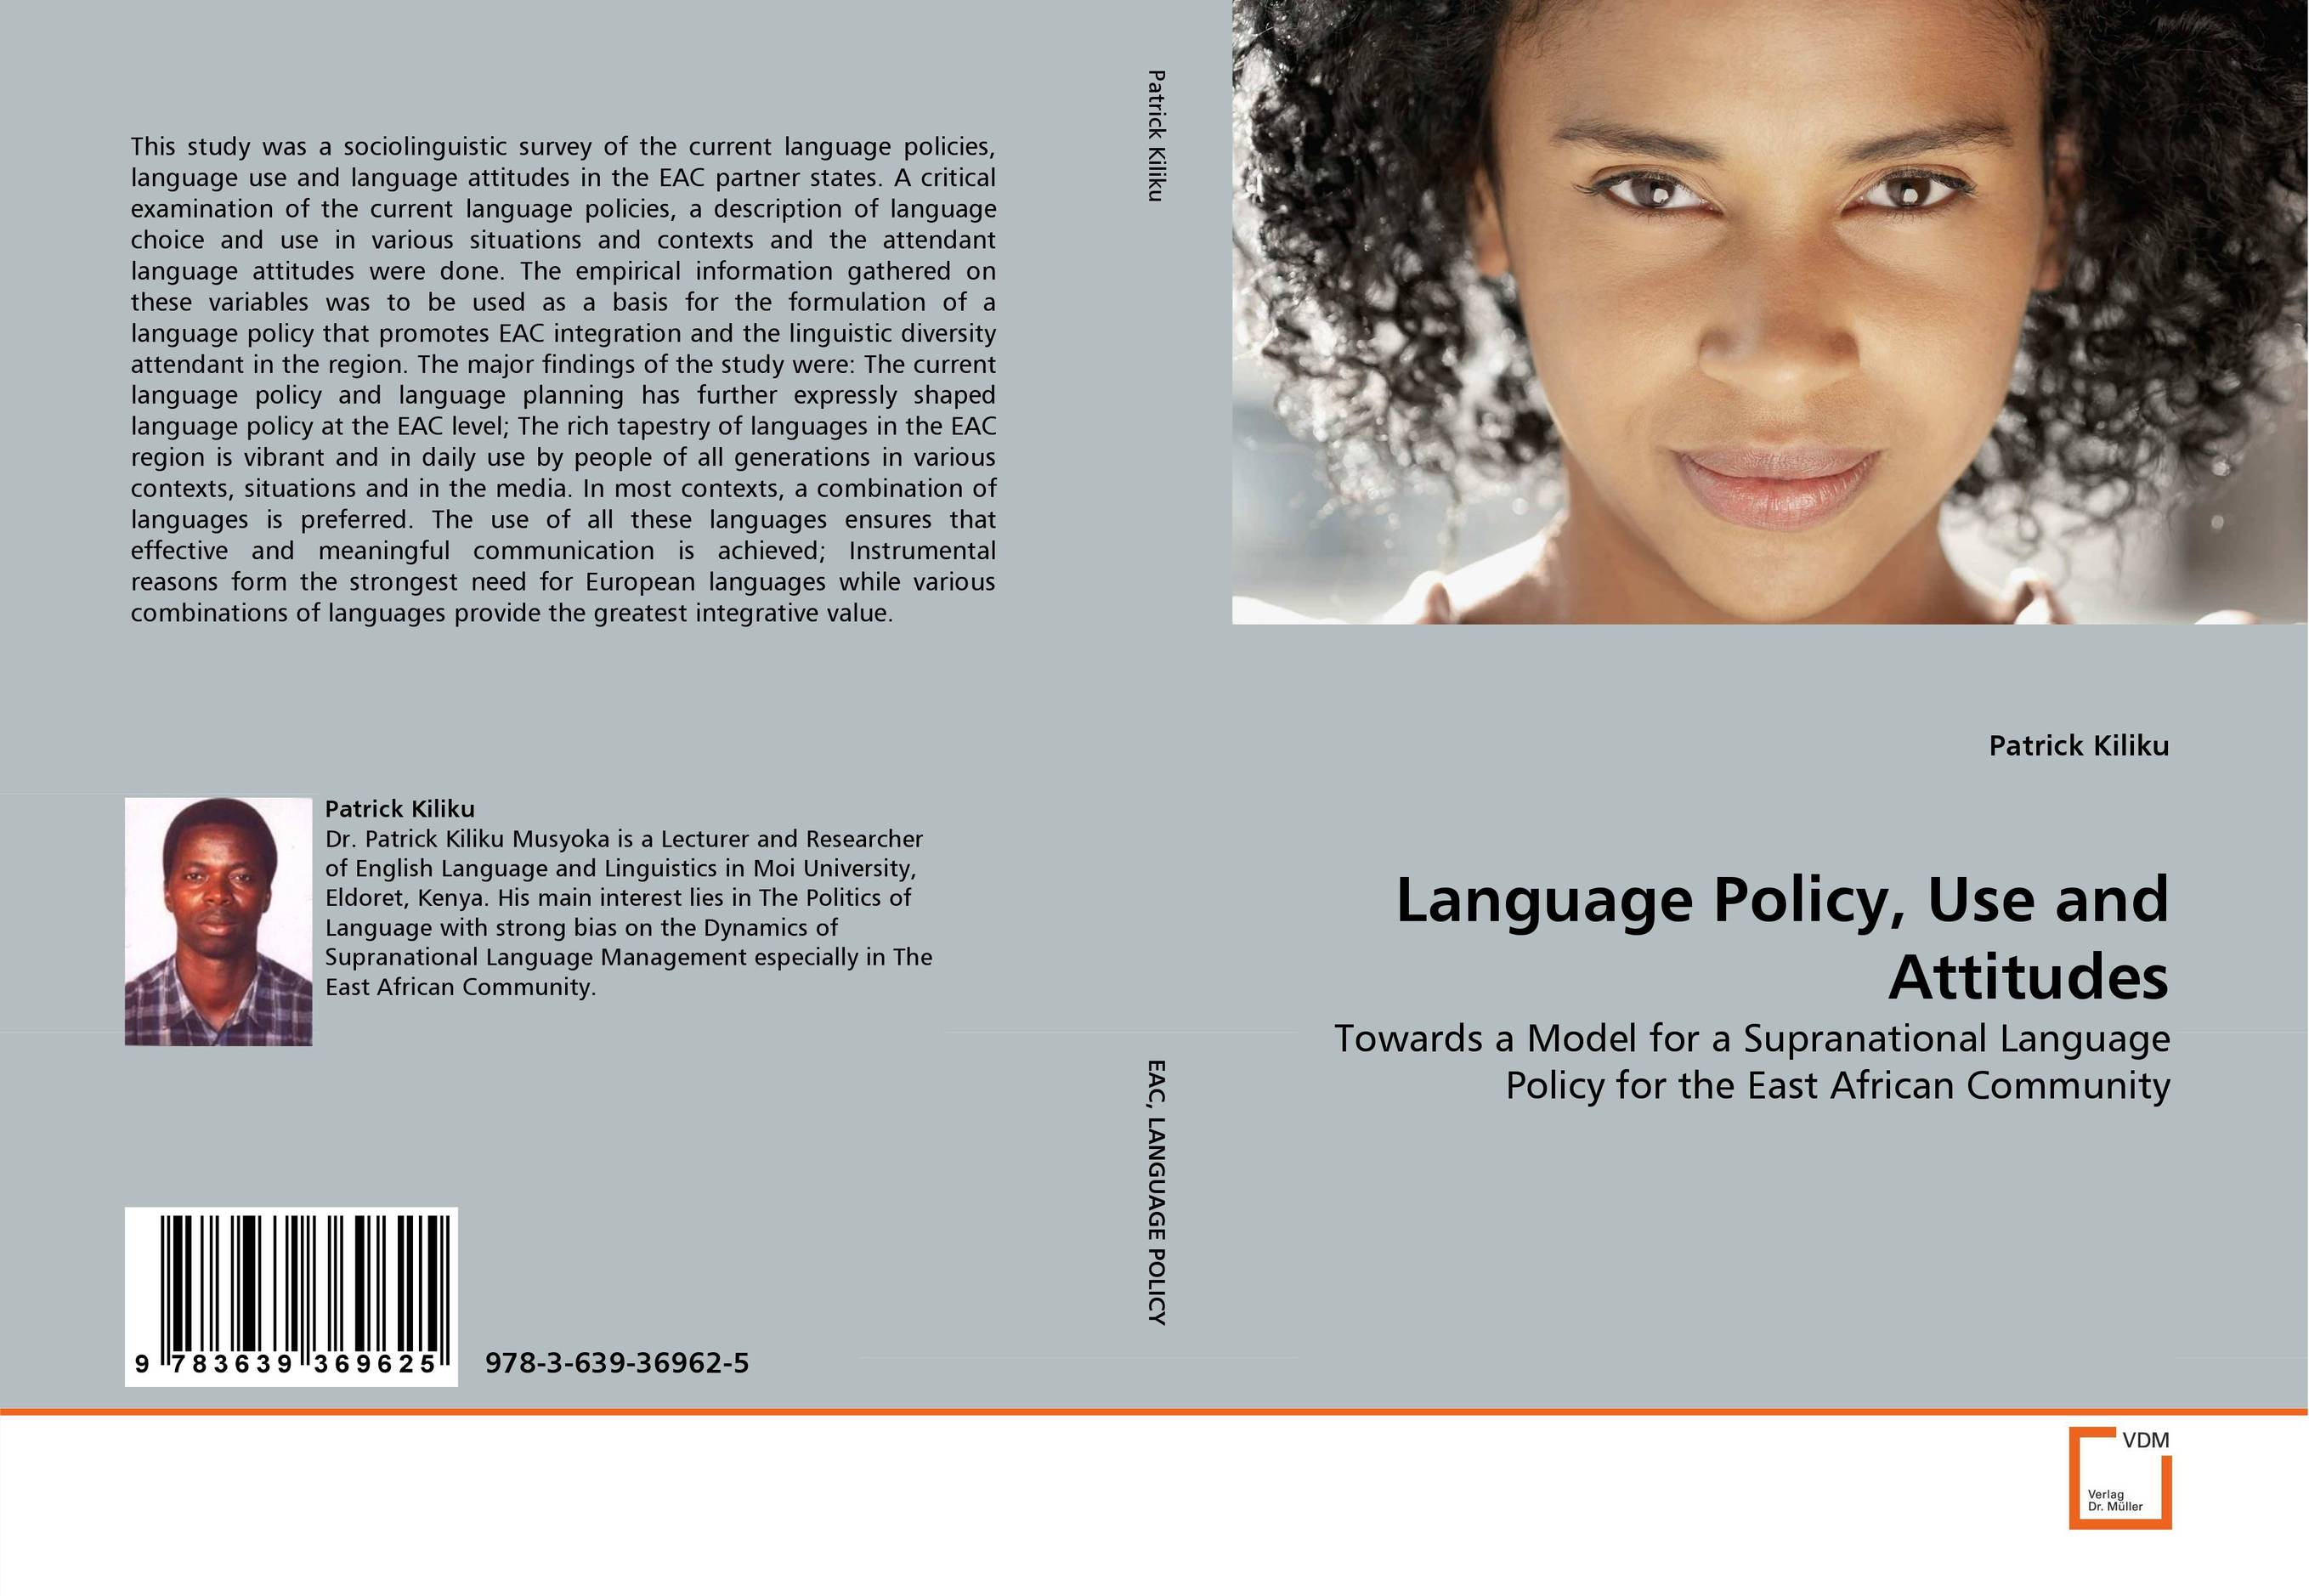 Language Policy, Use and Attitudes bertsch power and policy in communist systems paper only